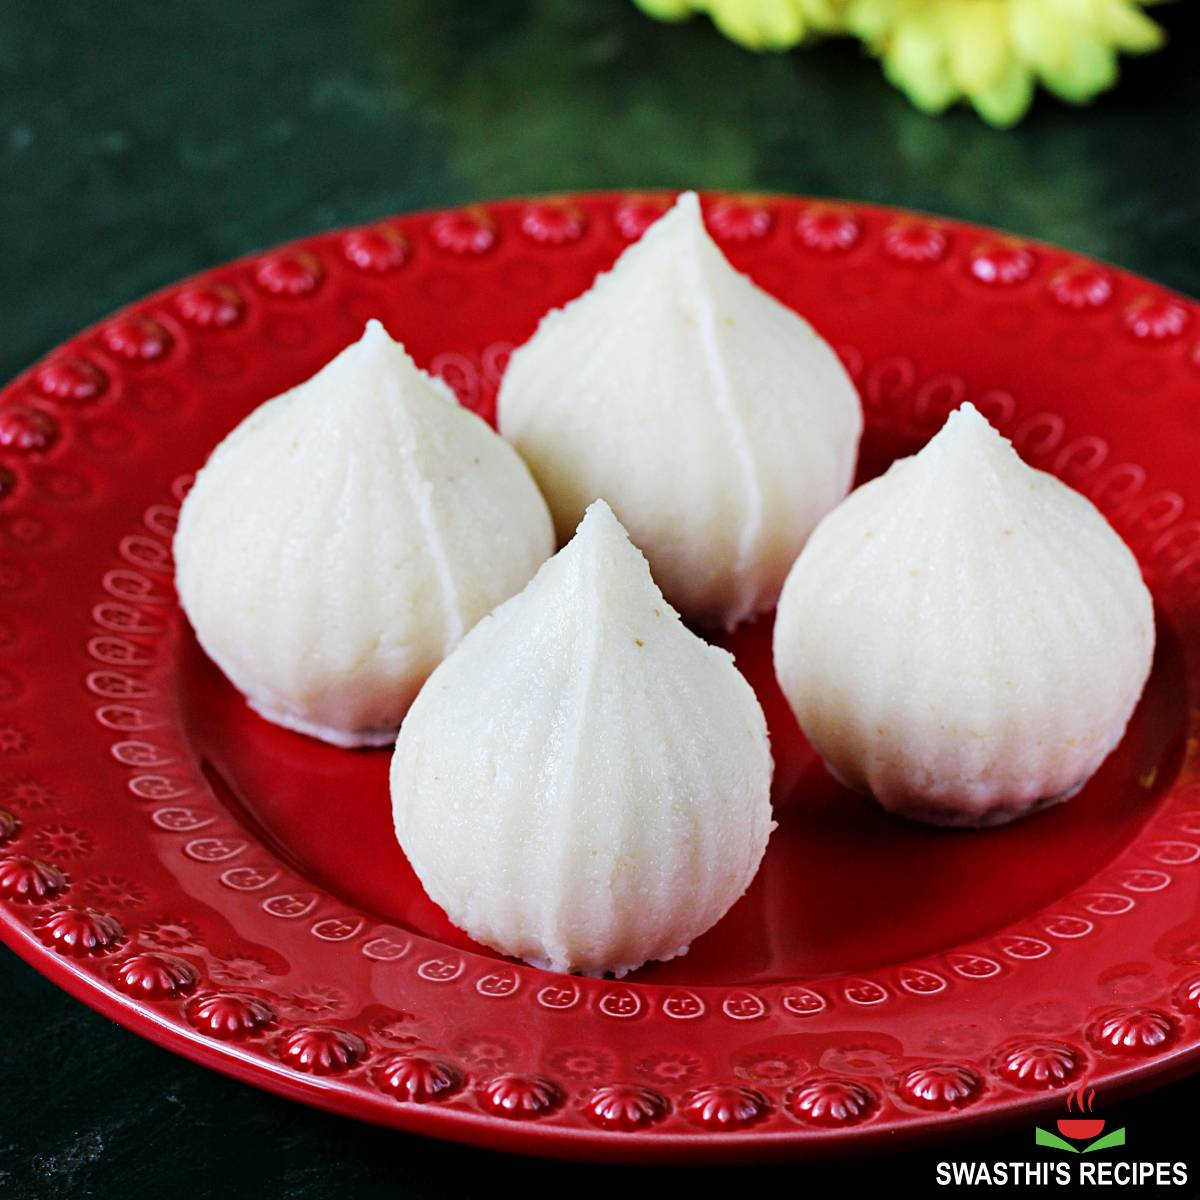 rava modak offered in a red plate